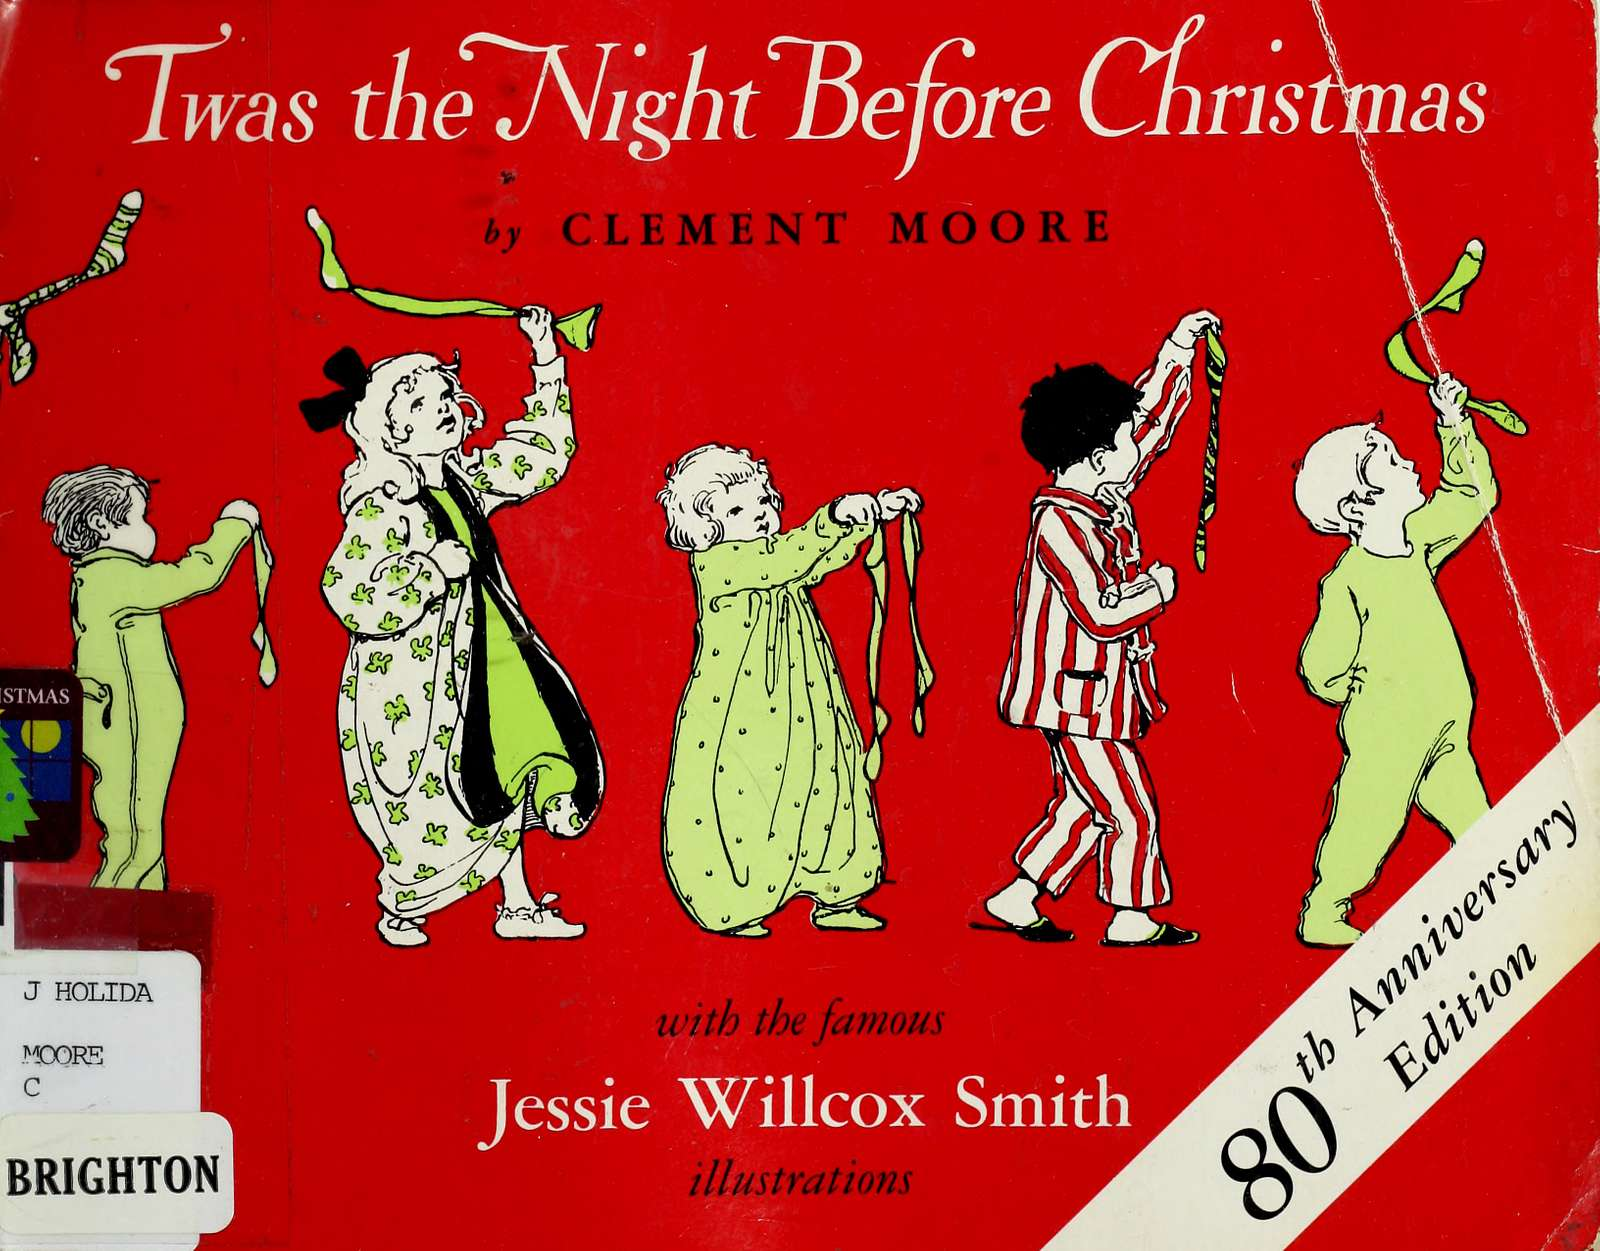 Twas the Night Before Christmas - 1912 edition of the poem, illustrated by Jessie Willcox Smith